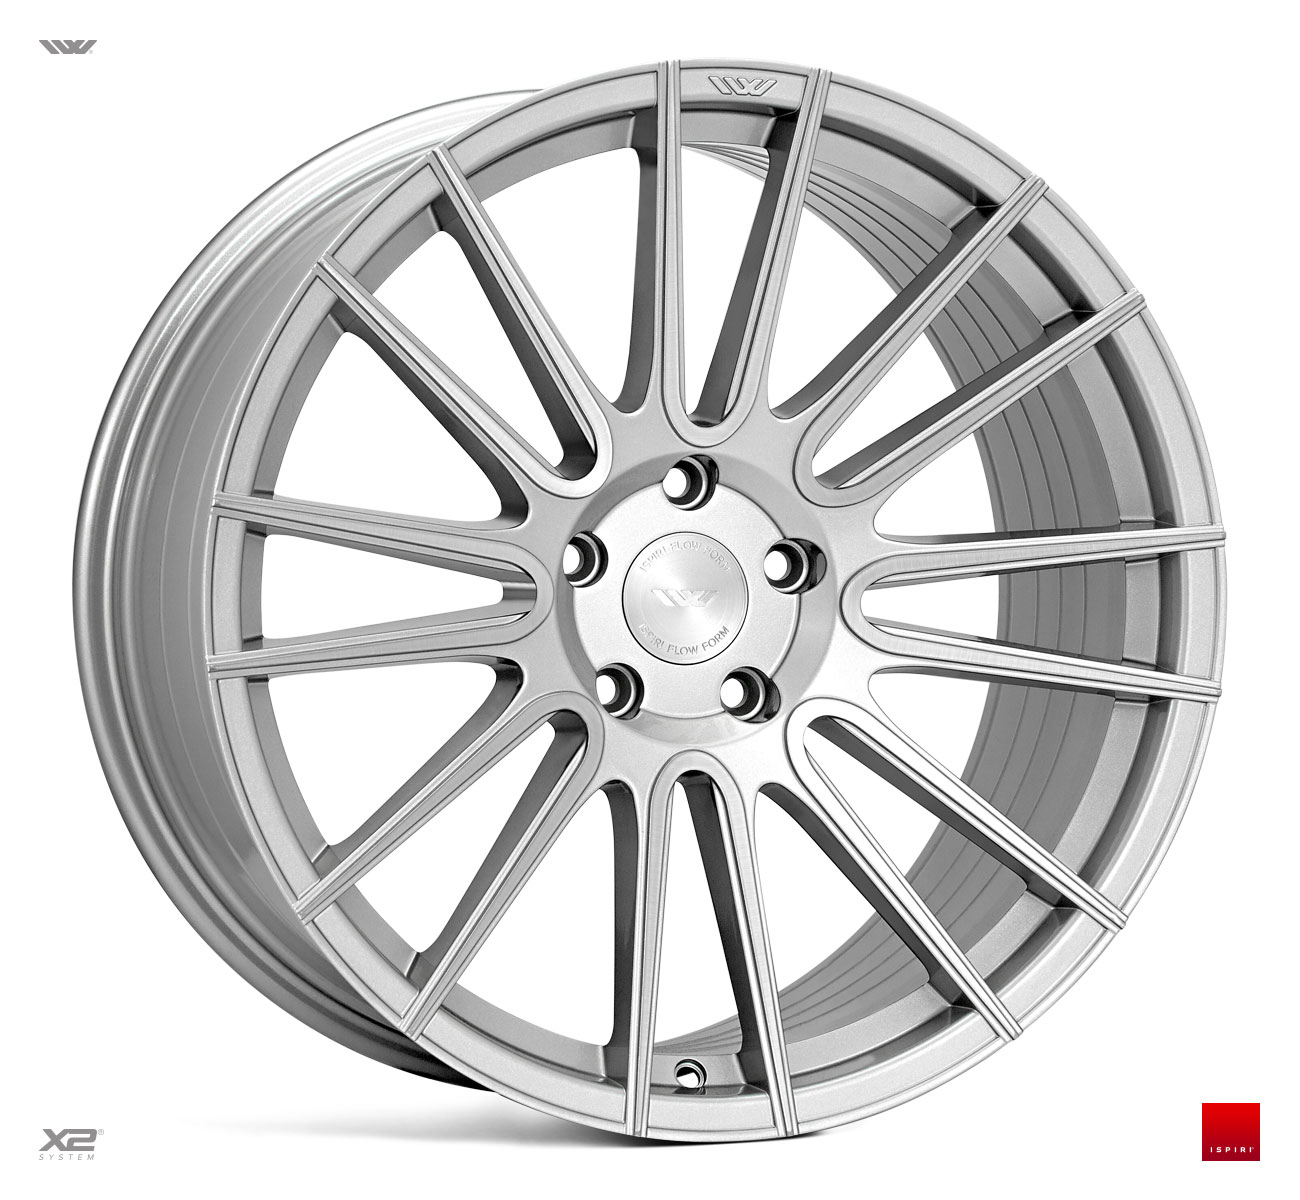 "NEW 20"" ISPIRI FFR8 8-TWIN CURVED SPOKE ALLOY WHEELS IN PURE SILVER BRUSHED, WIDER 10"" REARS"